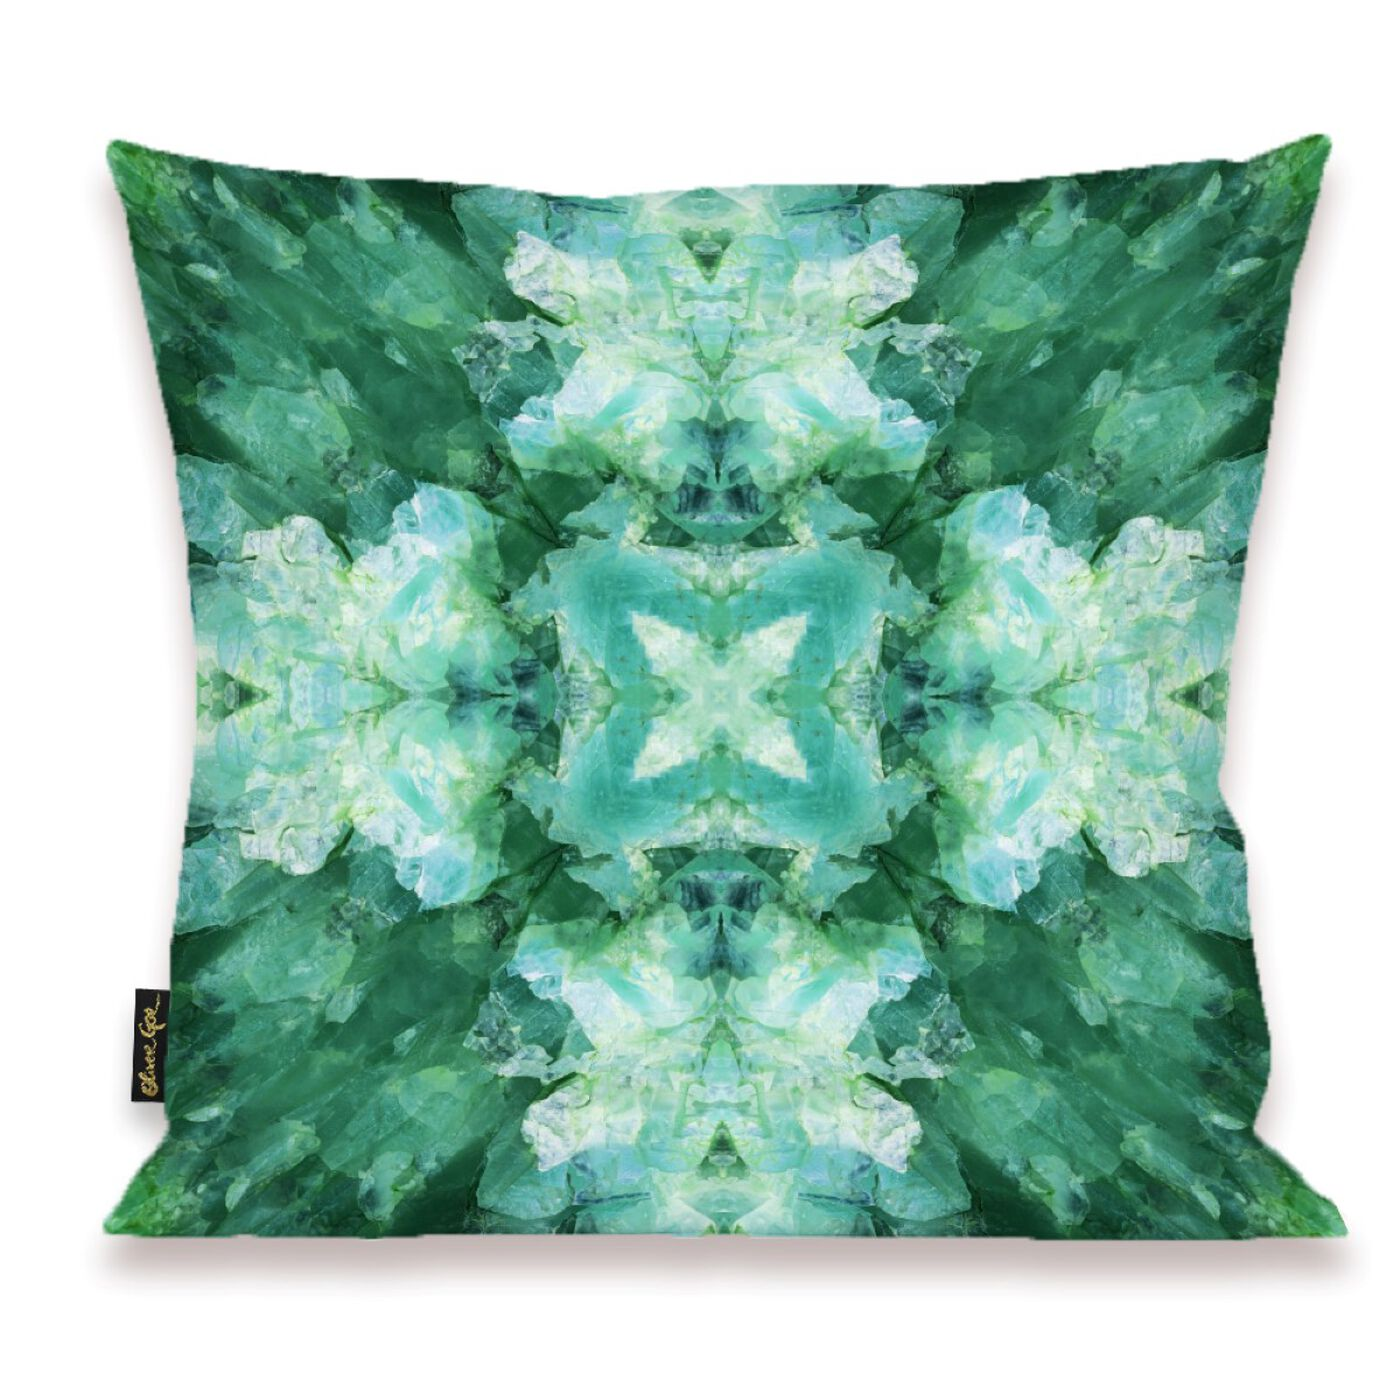 Gin On The Rocks Pillow